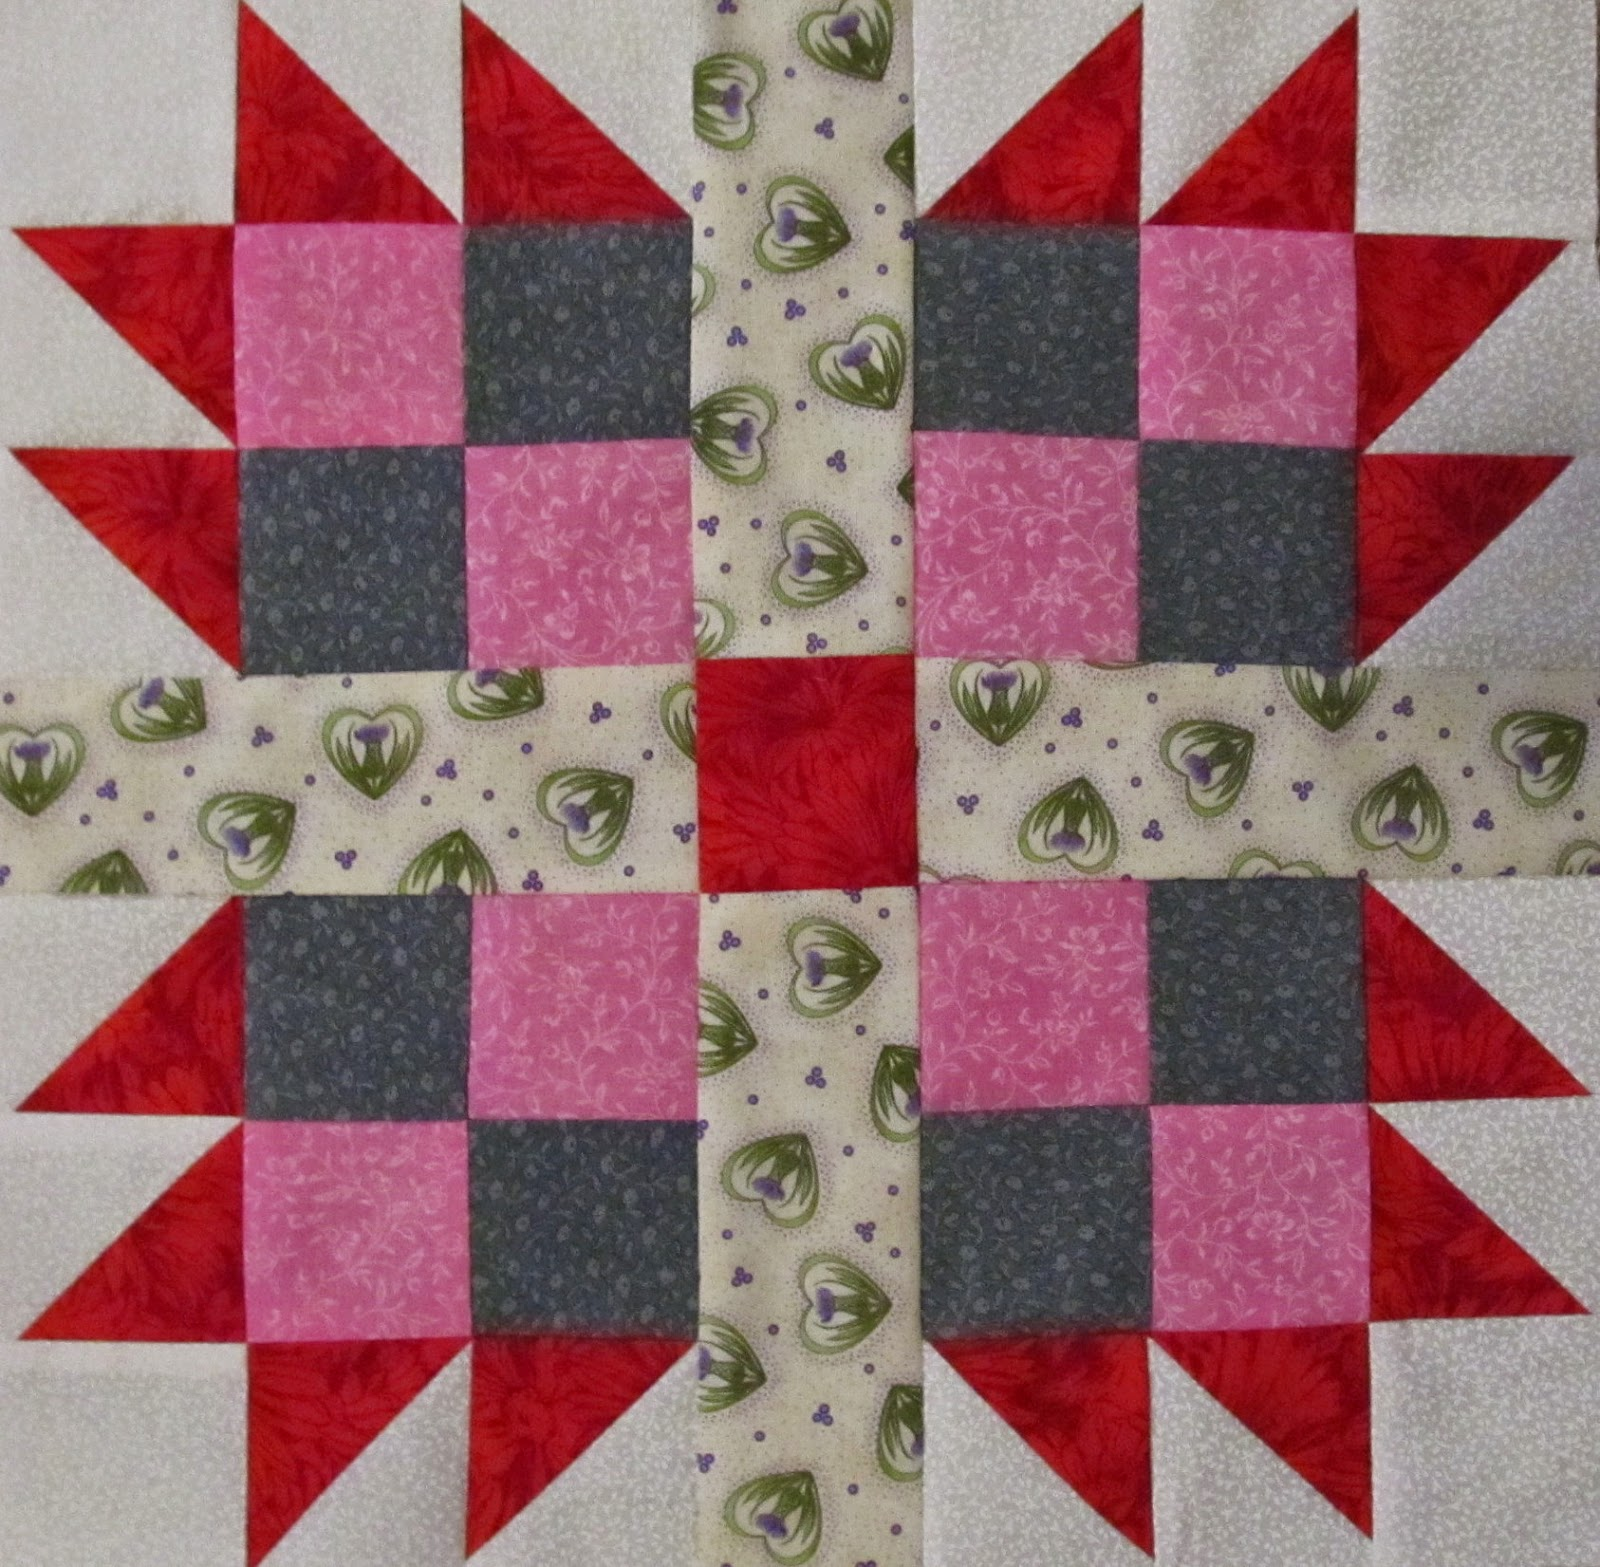 How to make a quilt pattern star, by The Quilt Ladies.